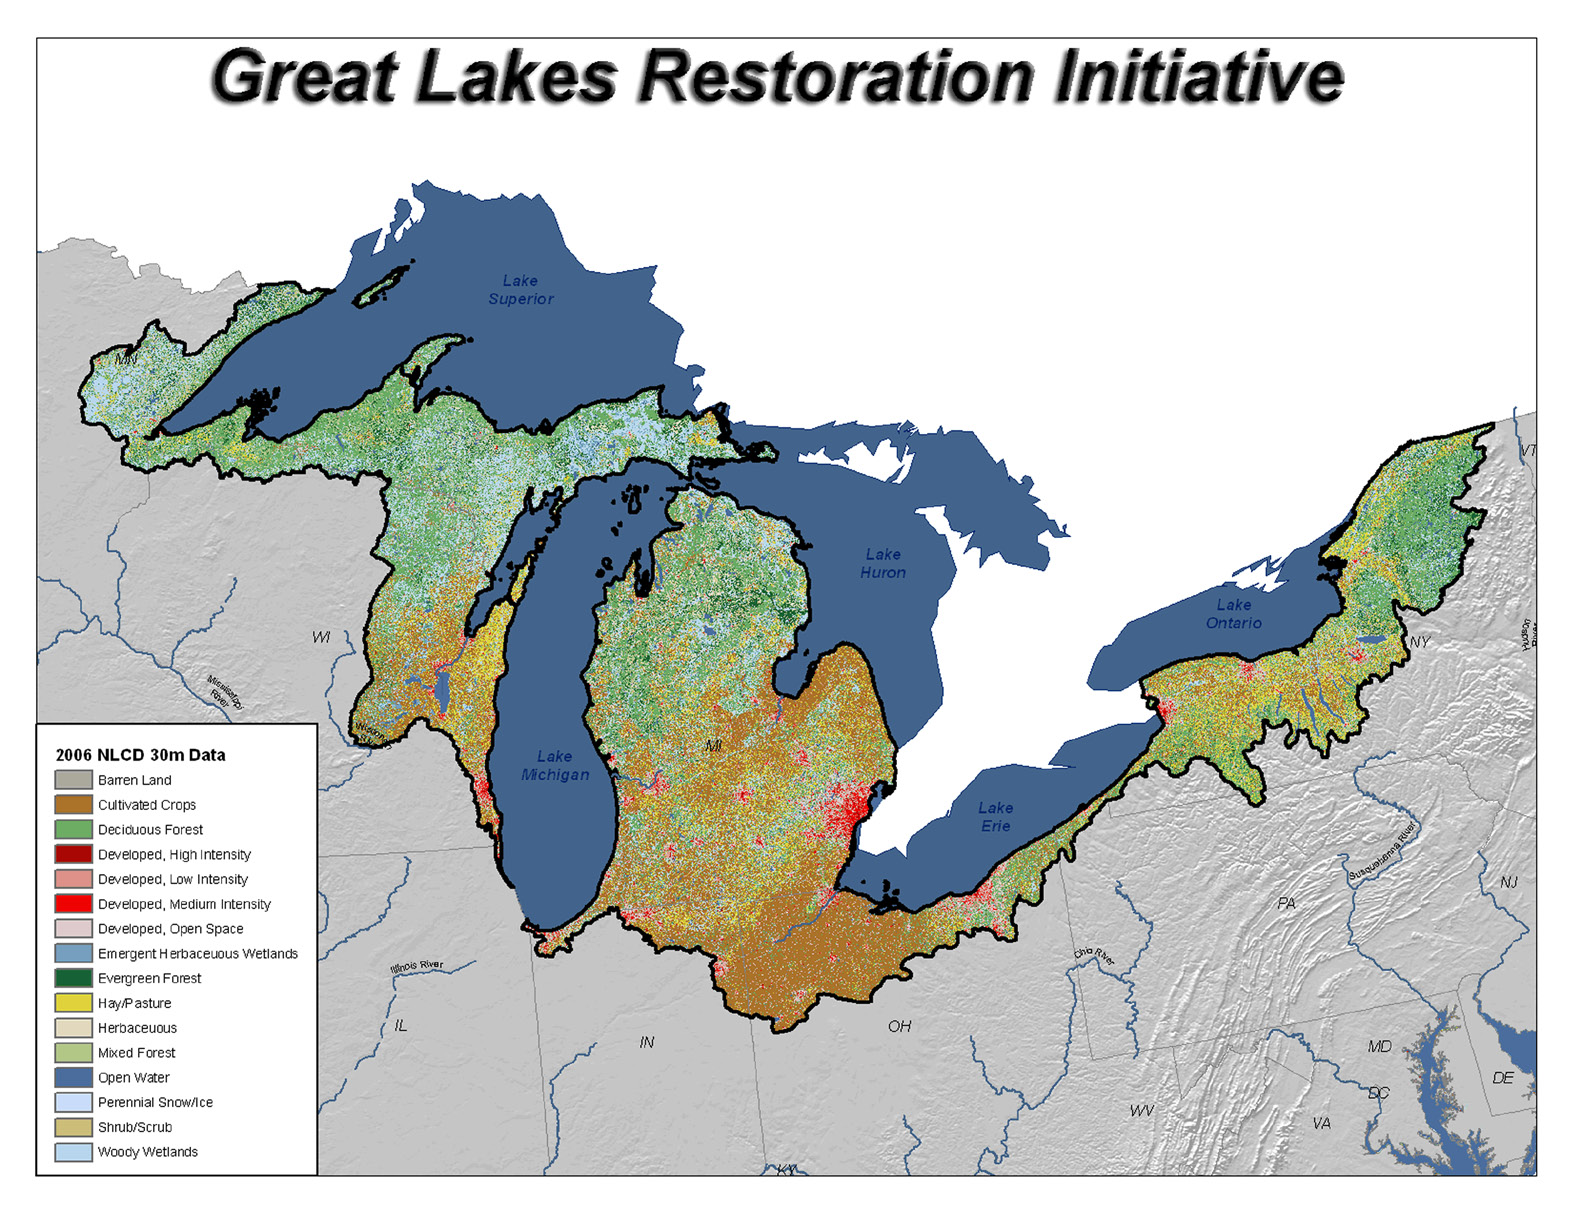 The Great Lakes Region has many land uses, from mixed forests to cultivated cropland.